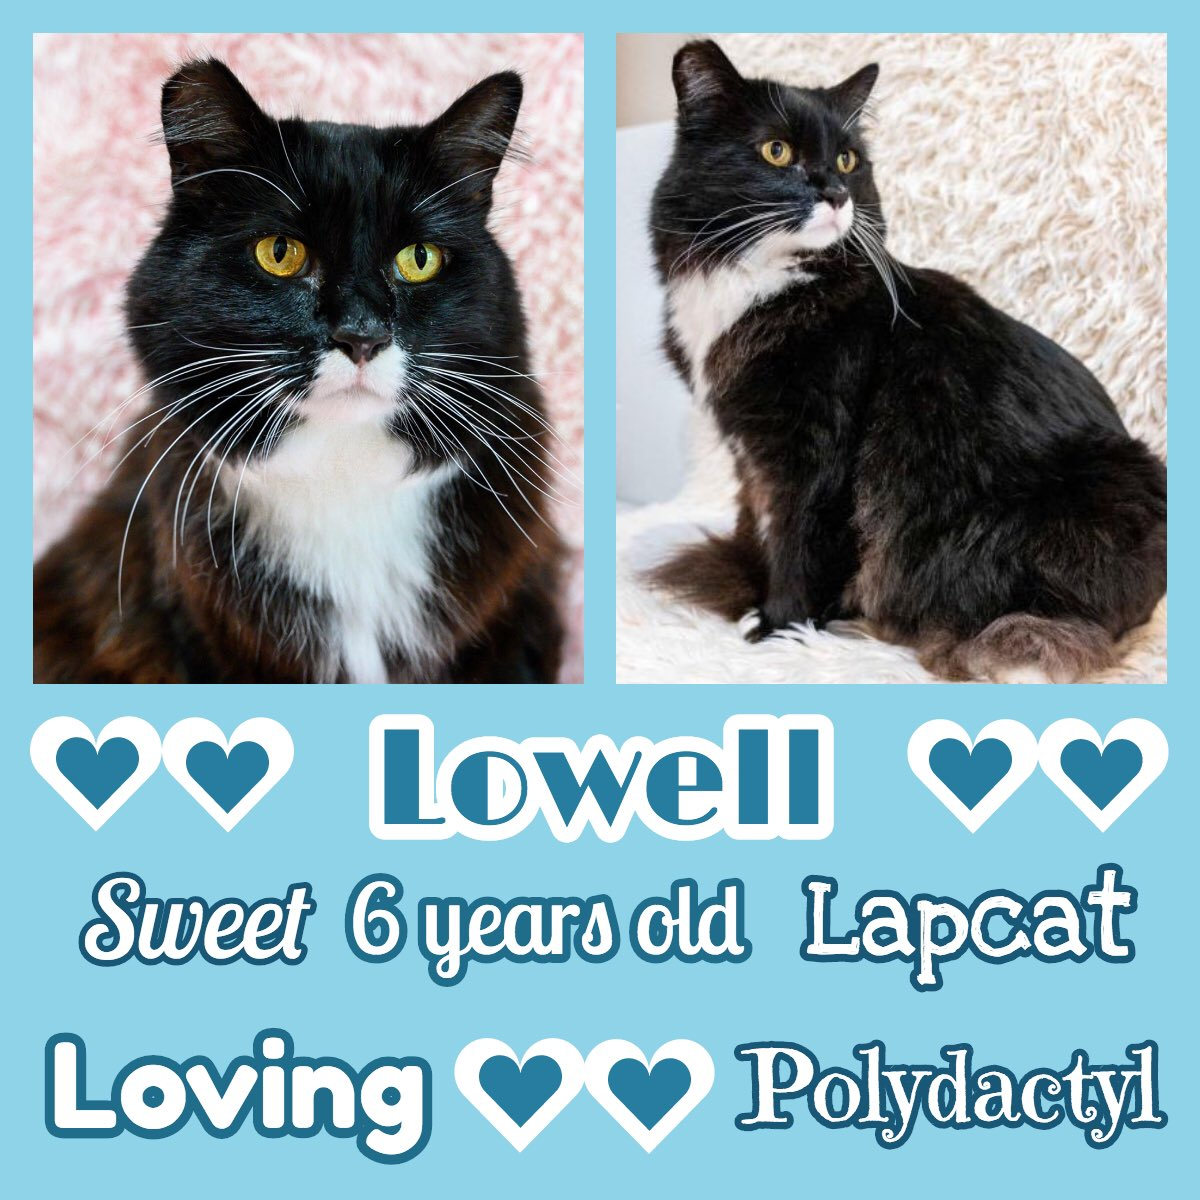 💖 Please RT! #Oakland, CA: Lowell is a large #MaineCoon mix at 15+ lbs, and is a polydactyl - meaning that he has big paws with extra toes! He's an affectionate lap #cat & loves brushing. He has some special needs...   #cats #Caturday #adopt #adoptdontshop